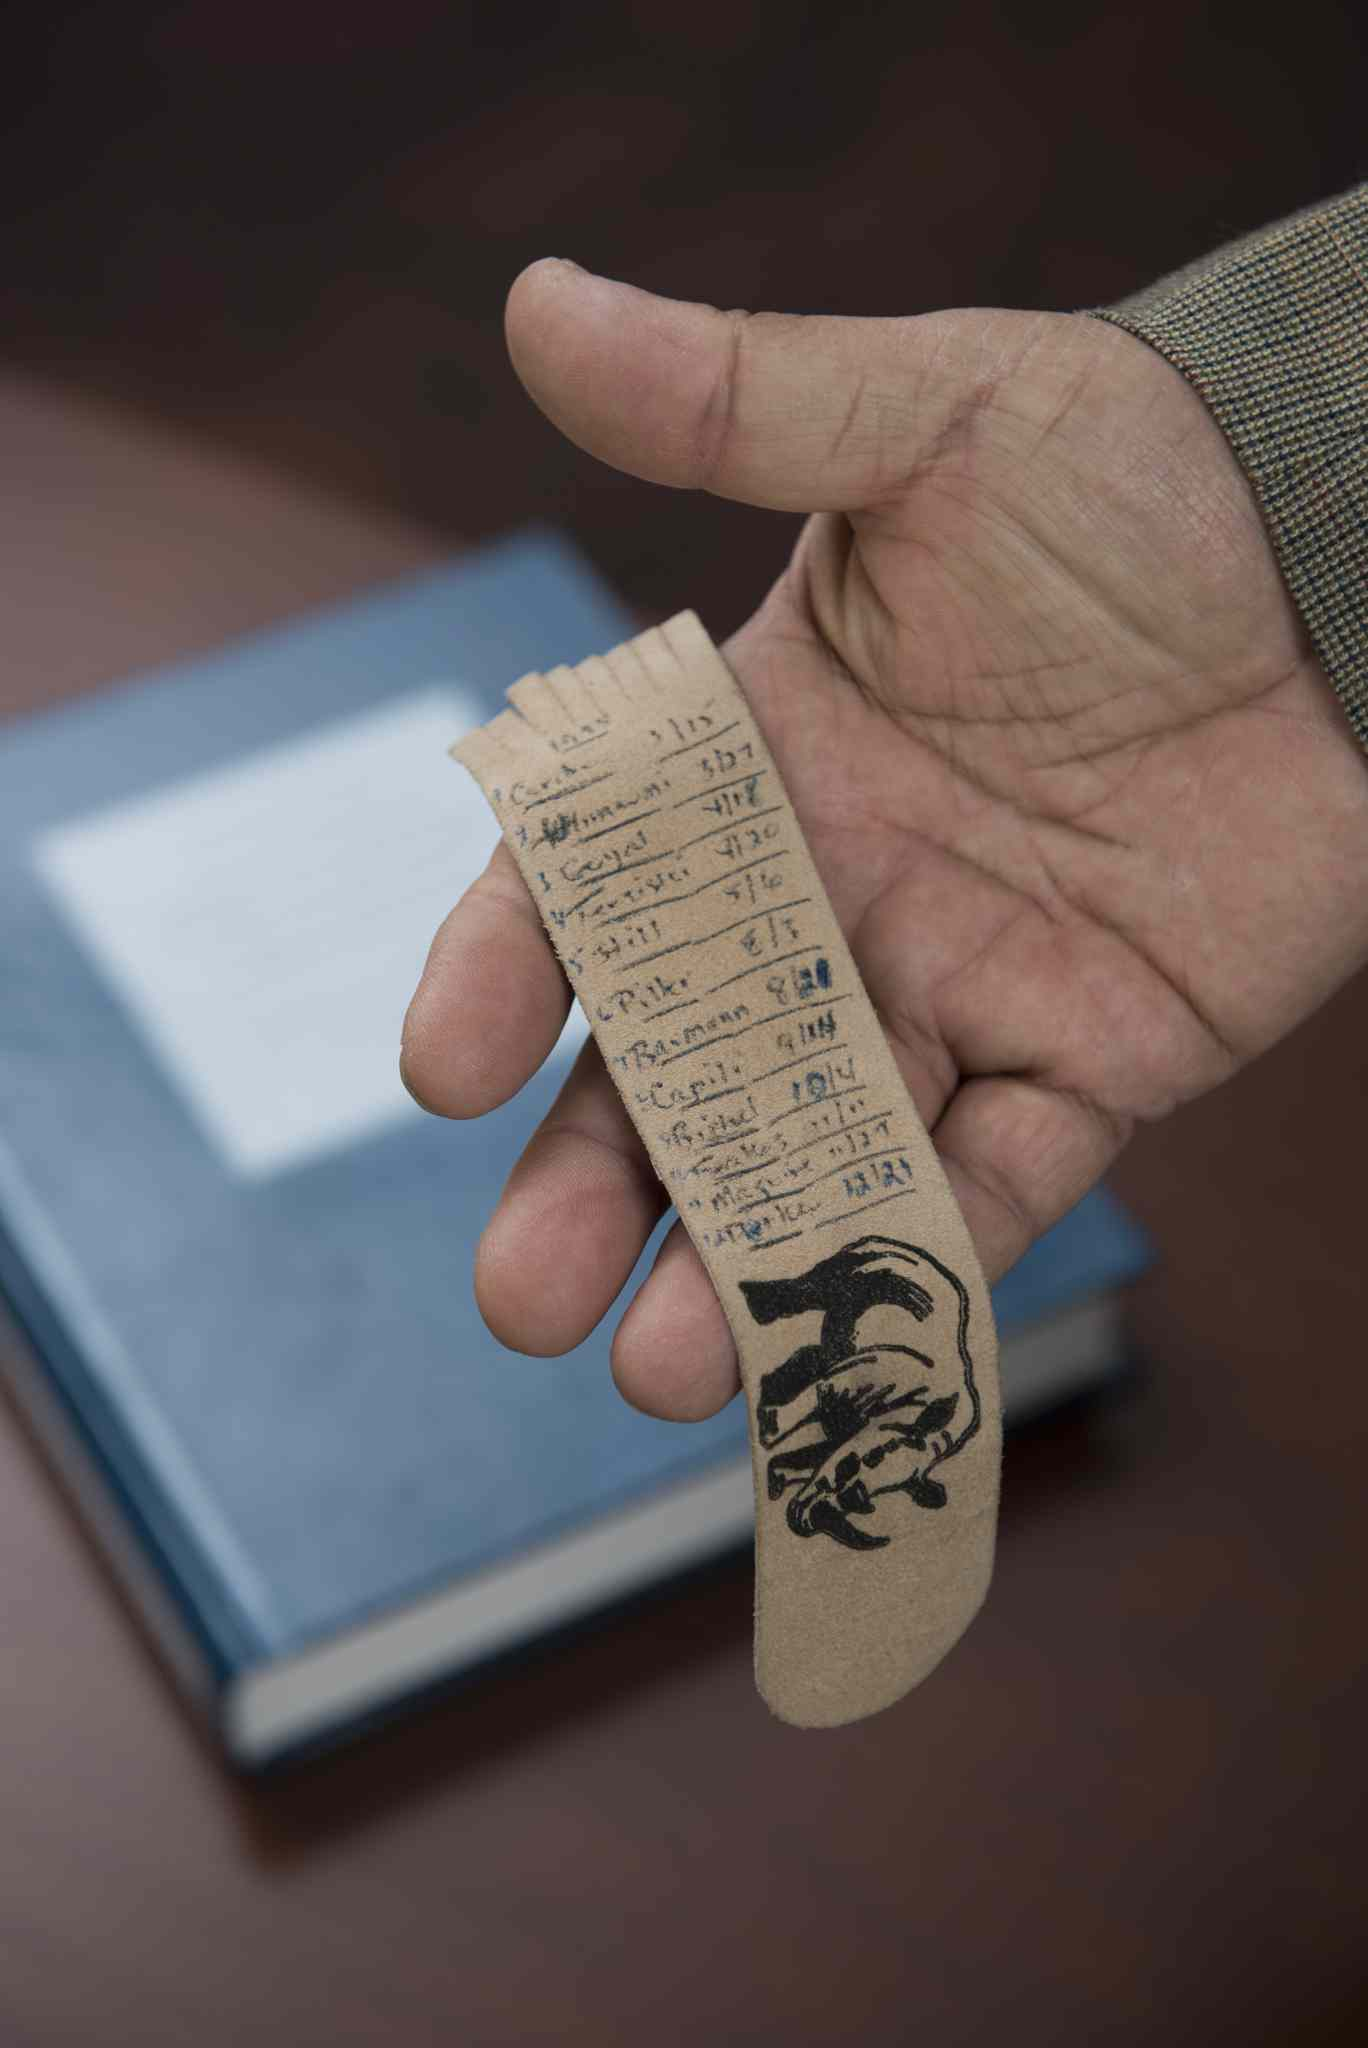 Murray Sinclair, the judge of the Pediatric Cardiac Inquest, with the inquest report and a bookmark that he made naming each of the 12 children whose deaths led to the inquest.